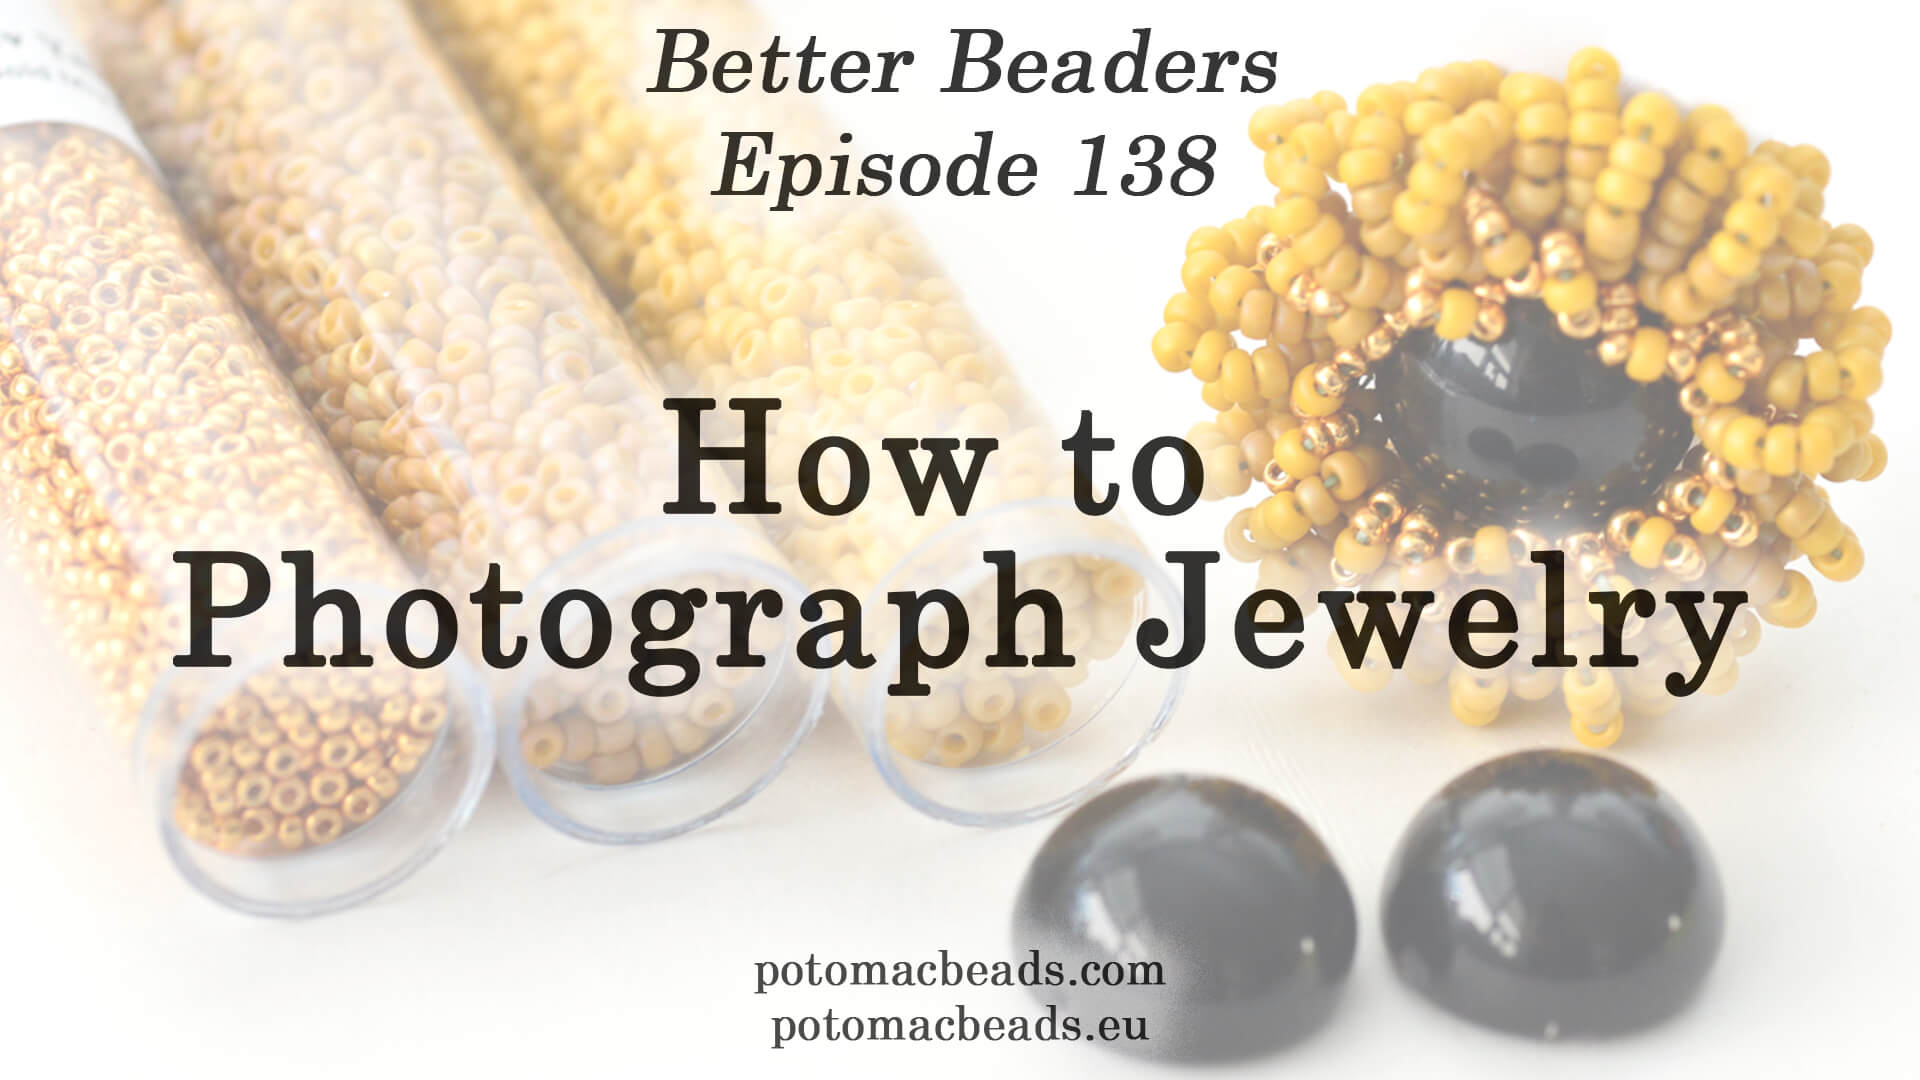 How to Bead / Better Beader Episodes / Better Beader Episode 138 - How to Photograph Jewelry Like a Professional